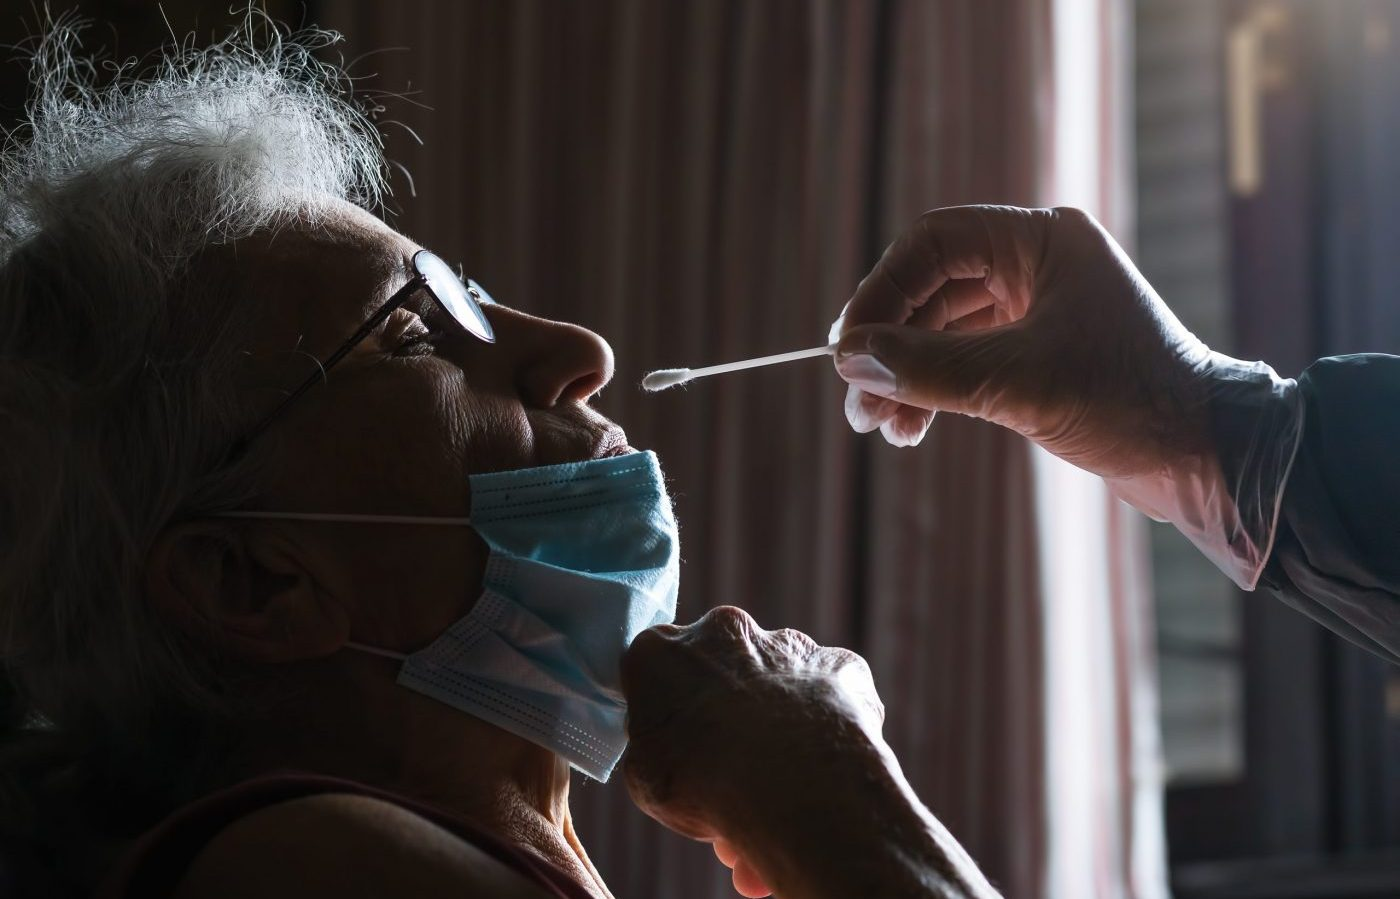 covid 19 swab nasal test performed on elderly woman at retirement home